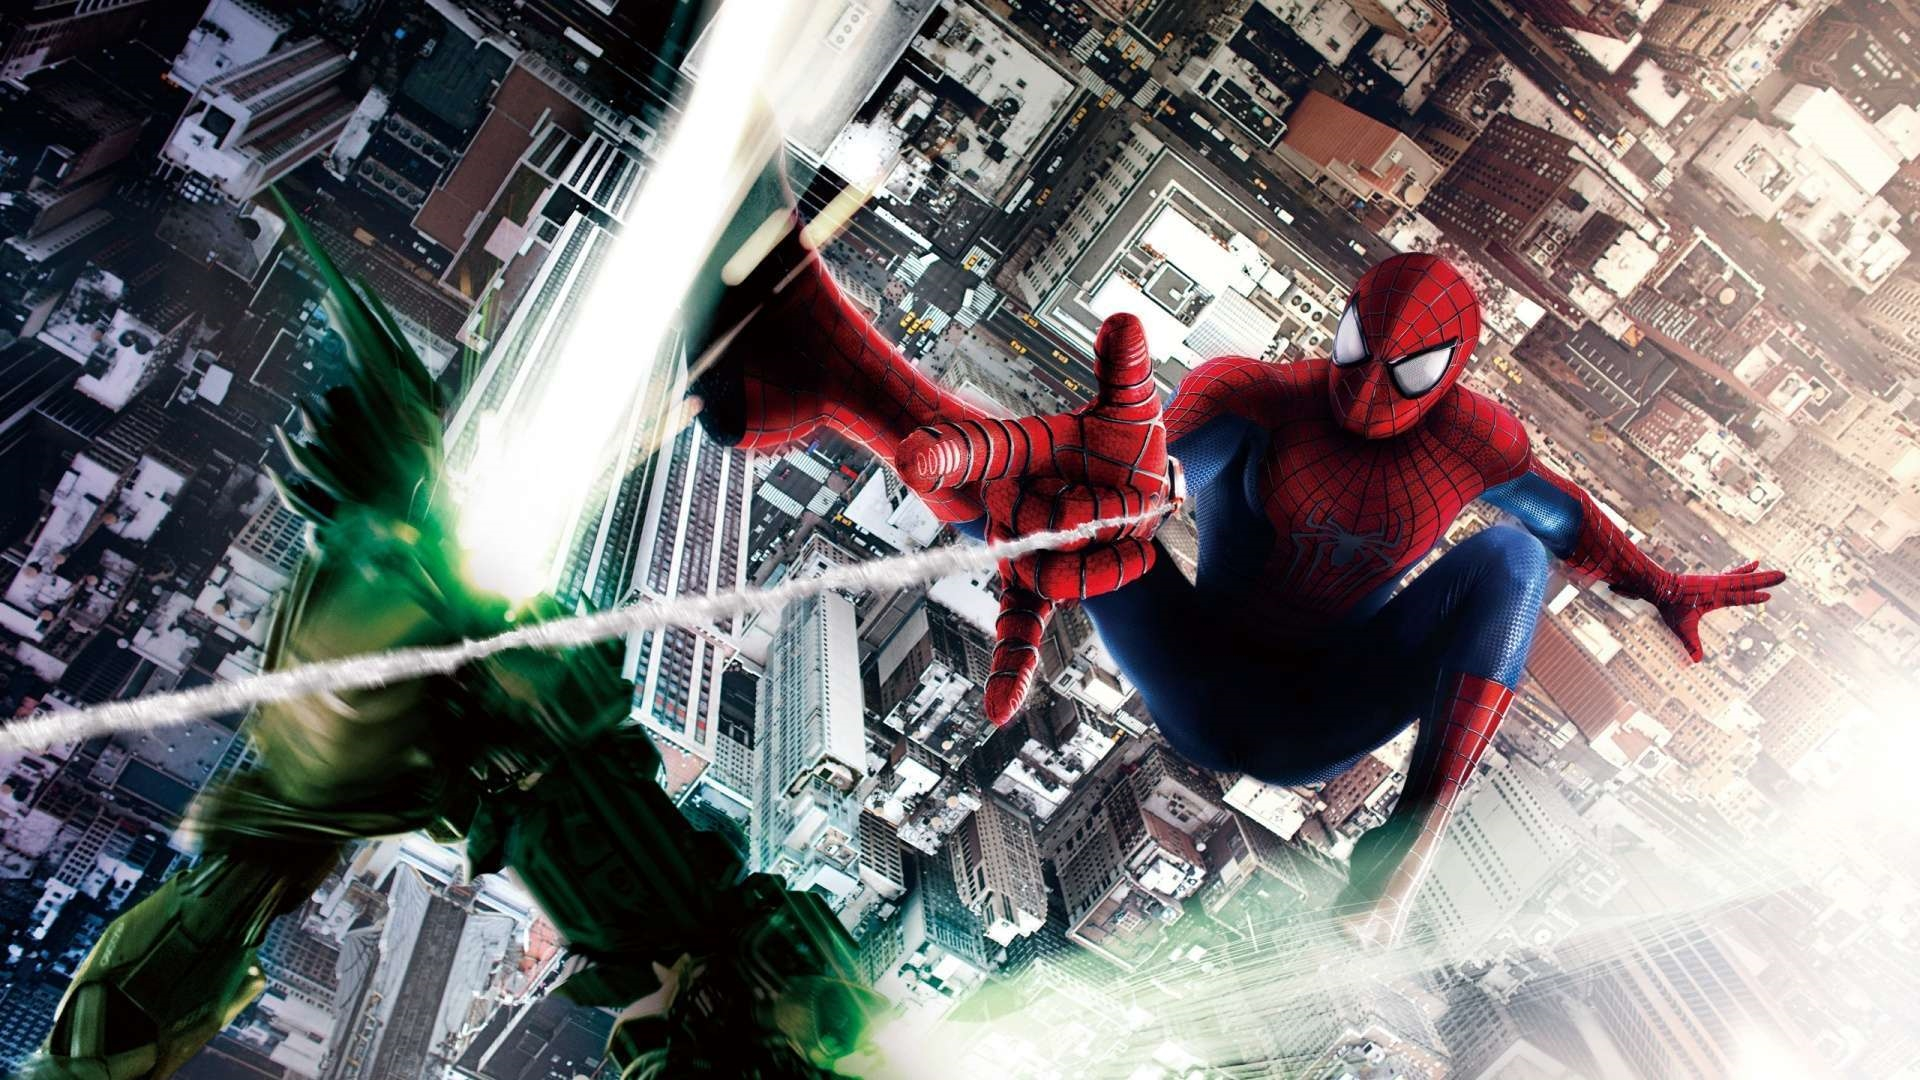 spiderman spider man amazing wallpaper